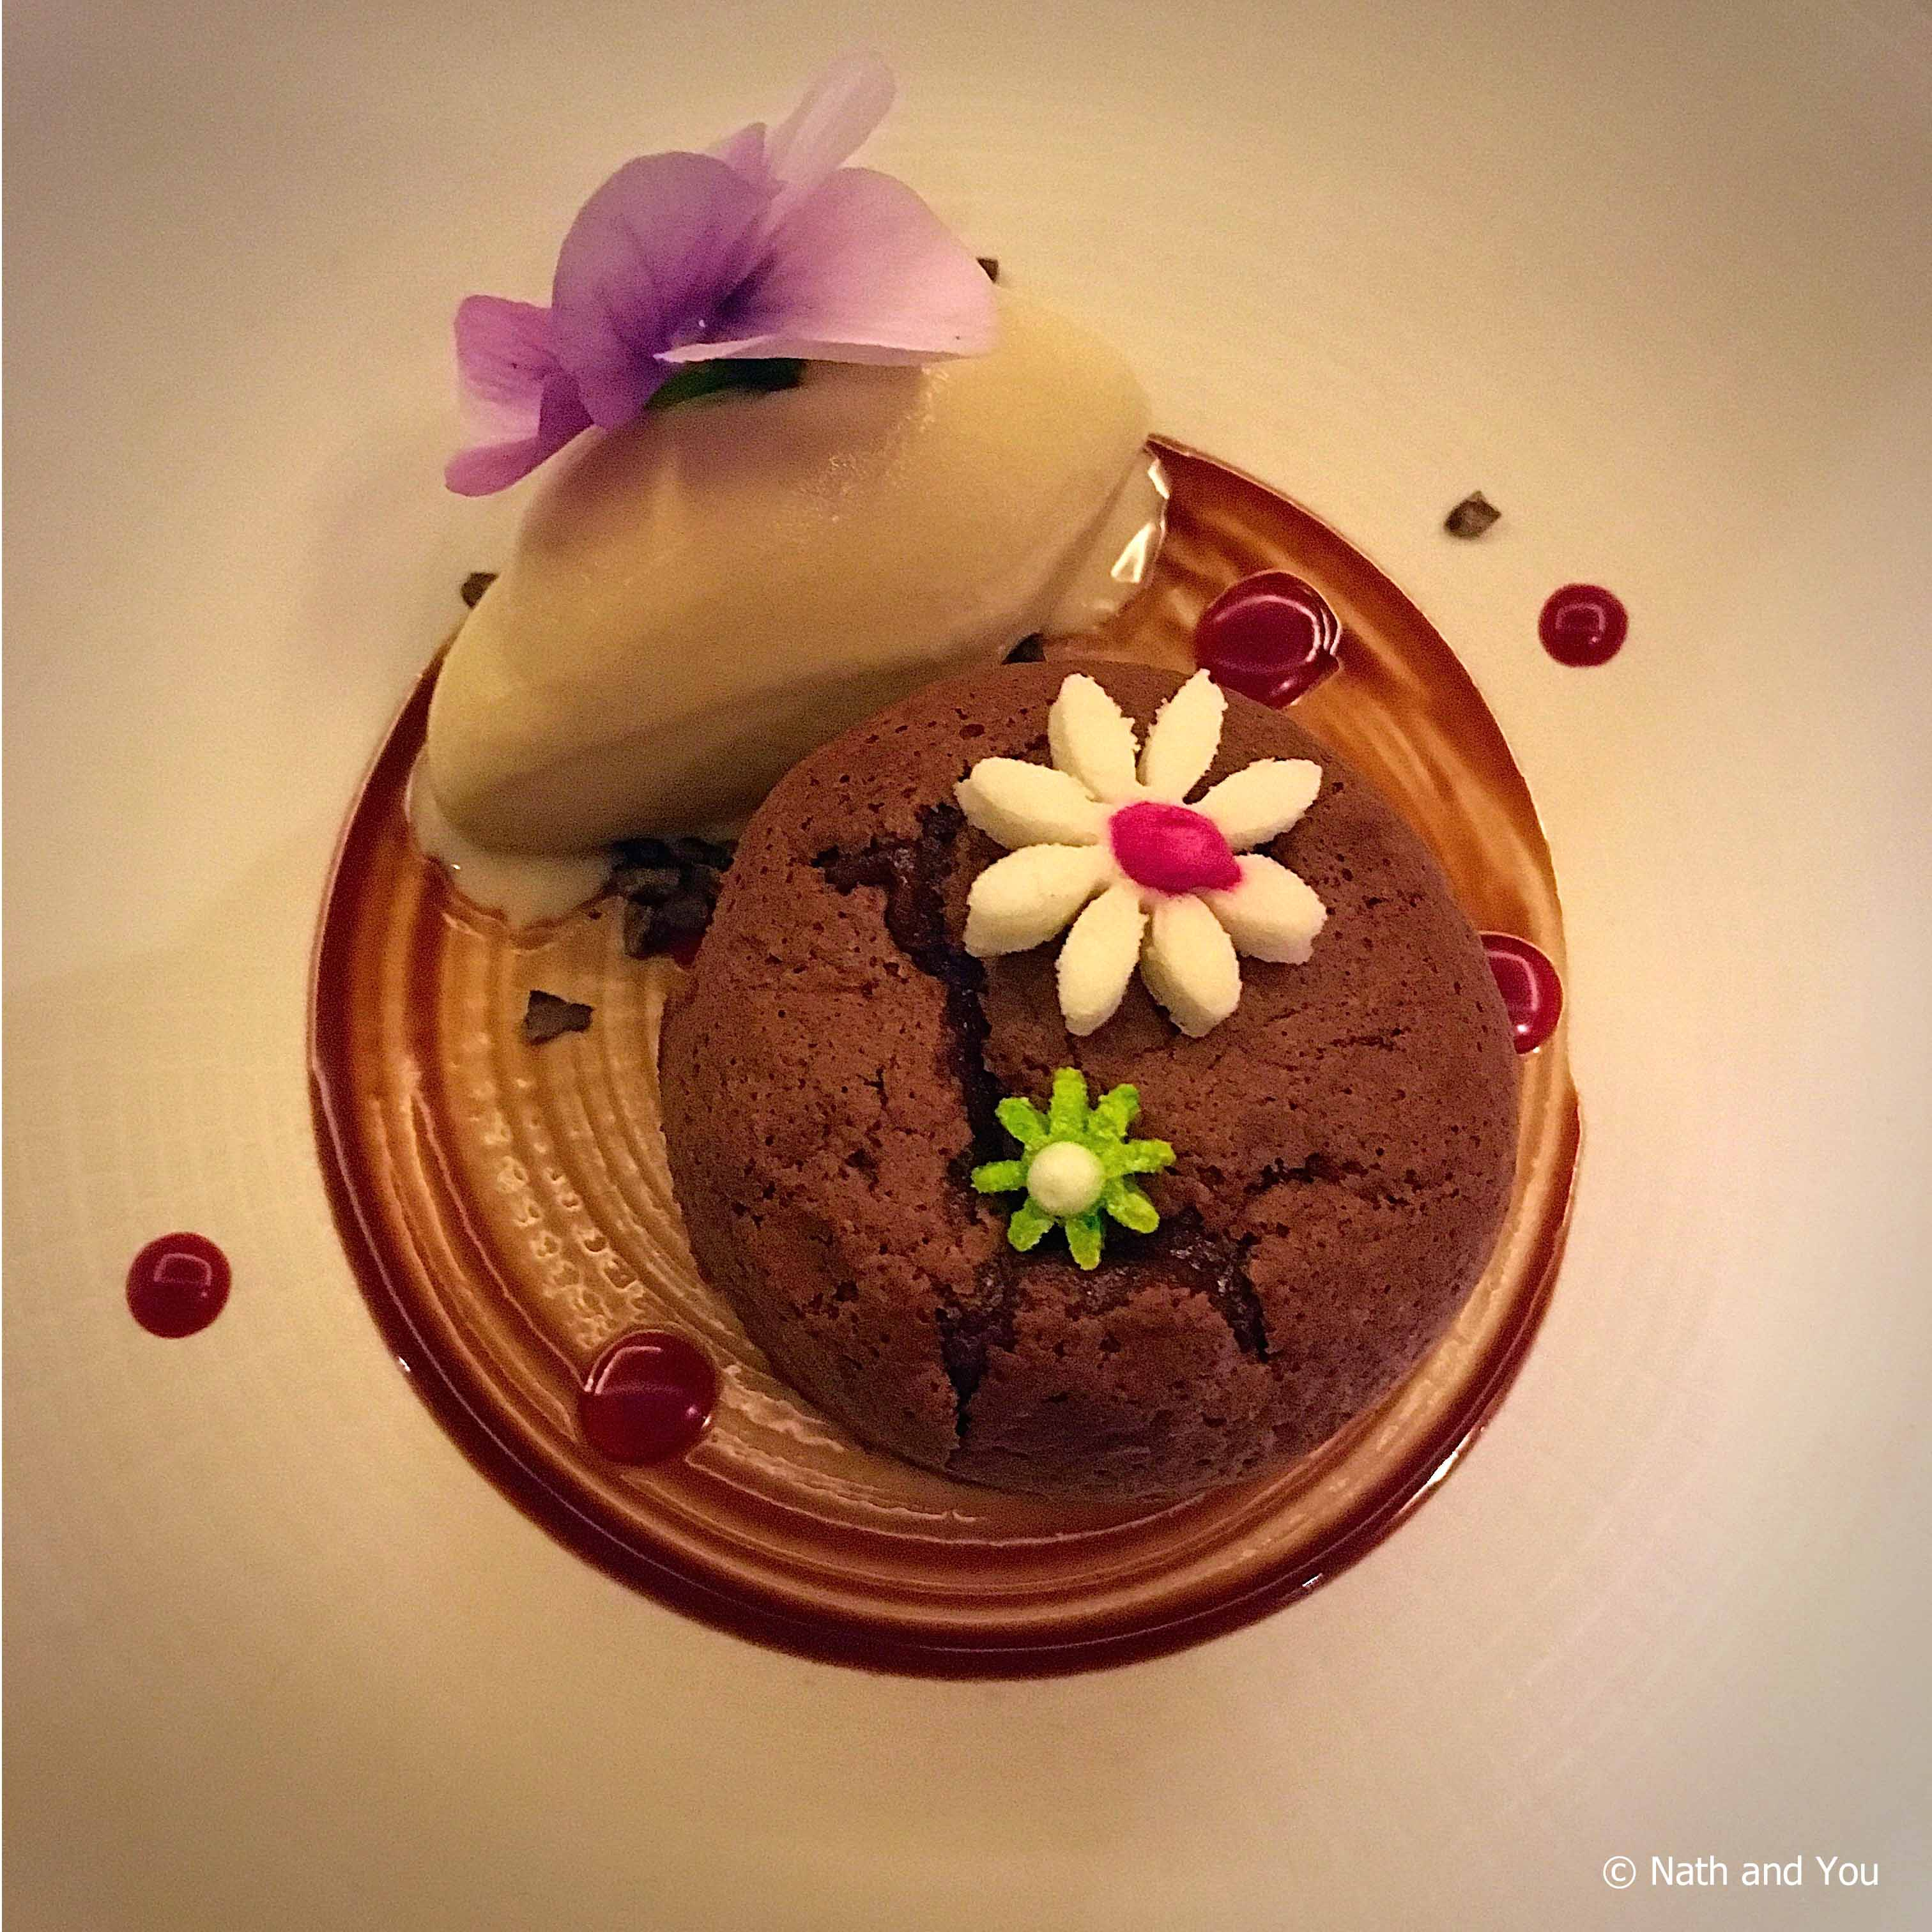 dessert-chocolat-pur-restaurant-1k-perou-nath-and-you